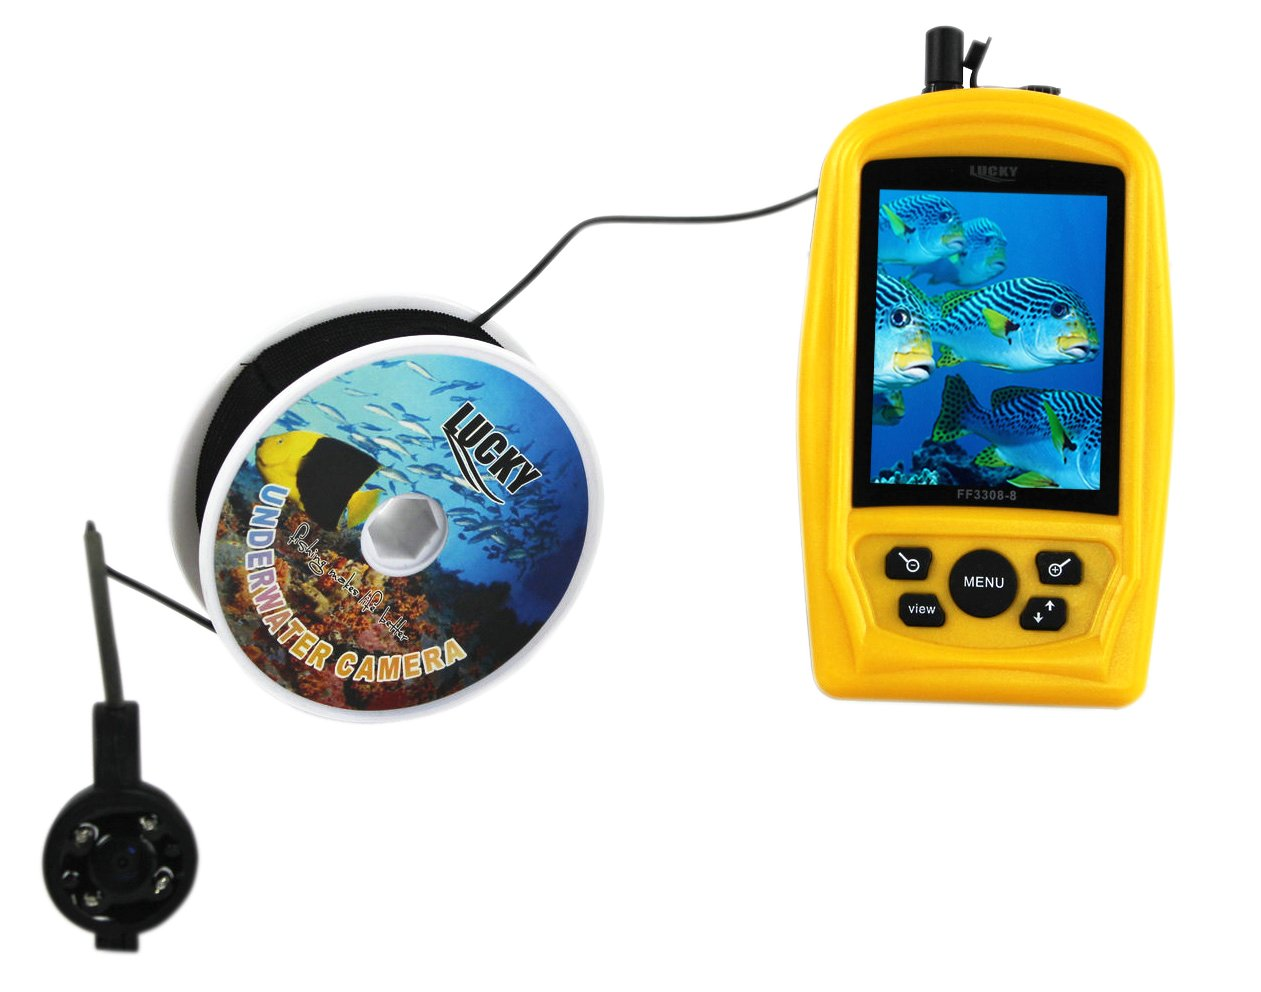 VECTORCOM Handheld Wired Fishfinder Fishing finder with underwater camera,20M camera cable.suitable for ice fishing. by VECTORCOM